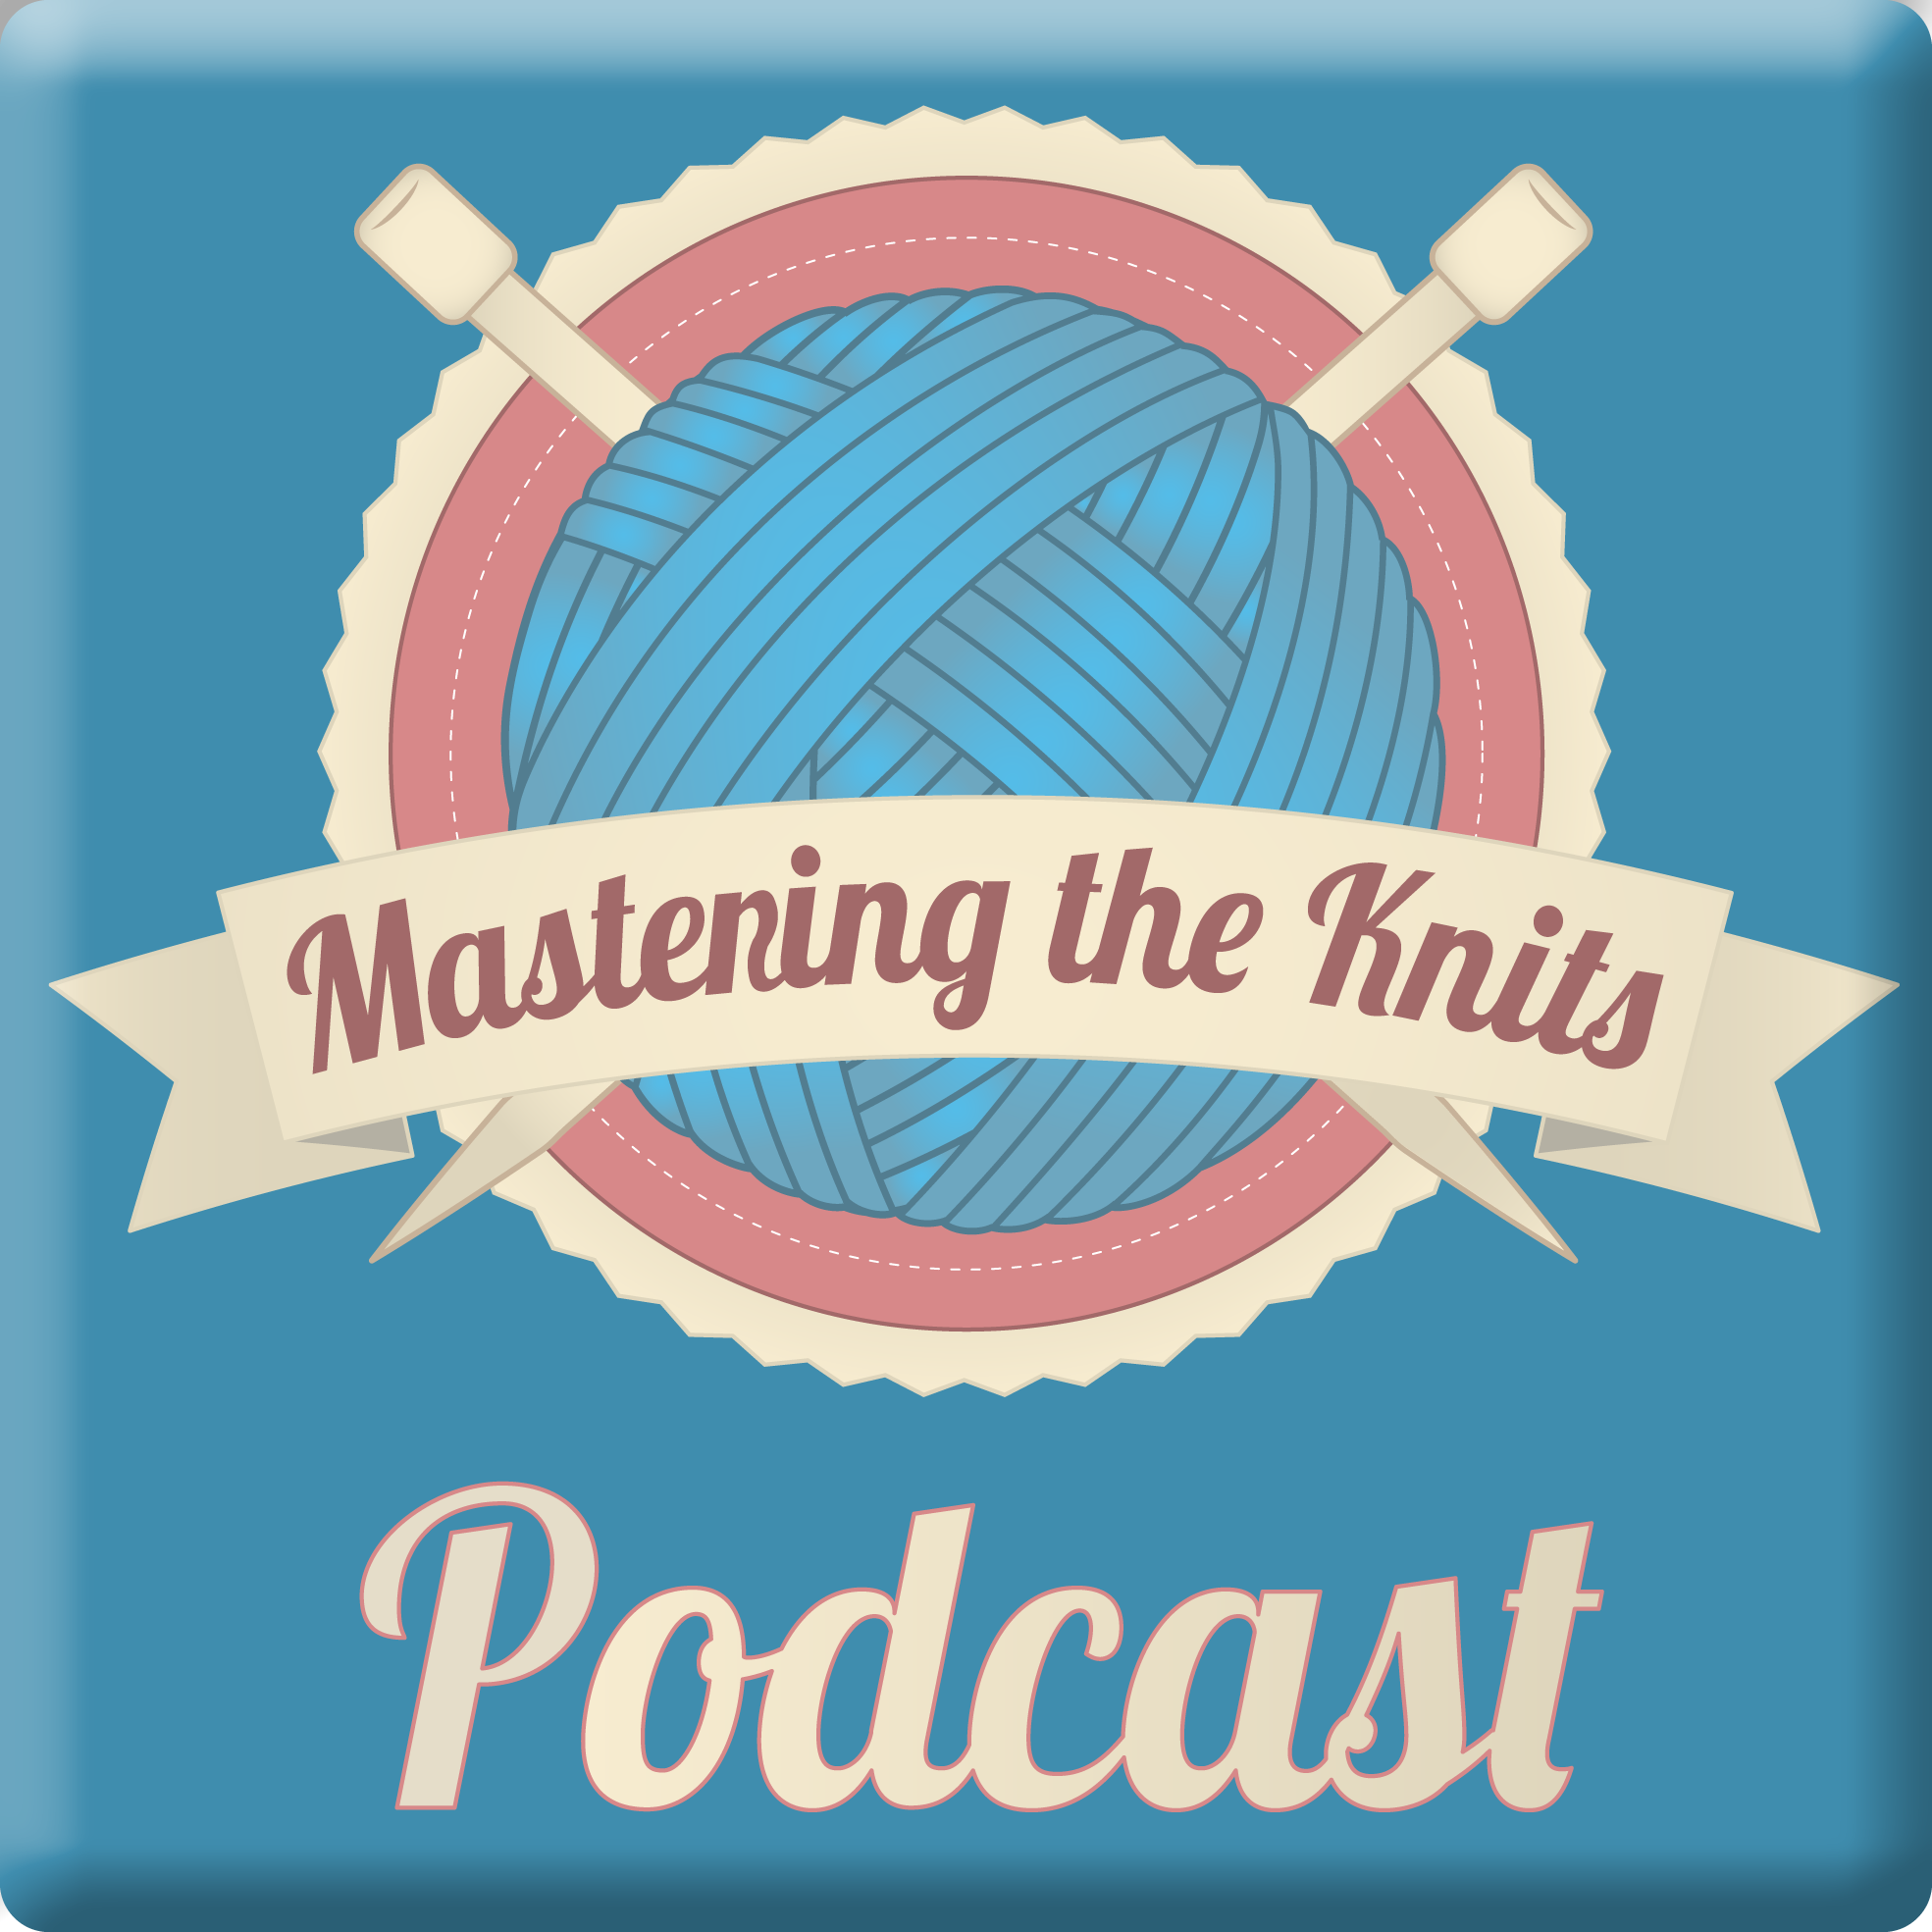 Mastering the Knits podcast show art